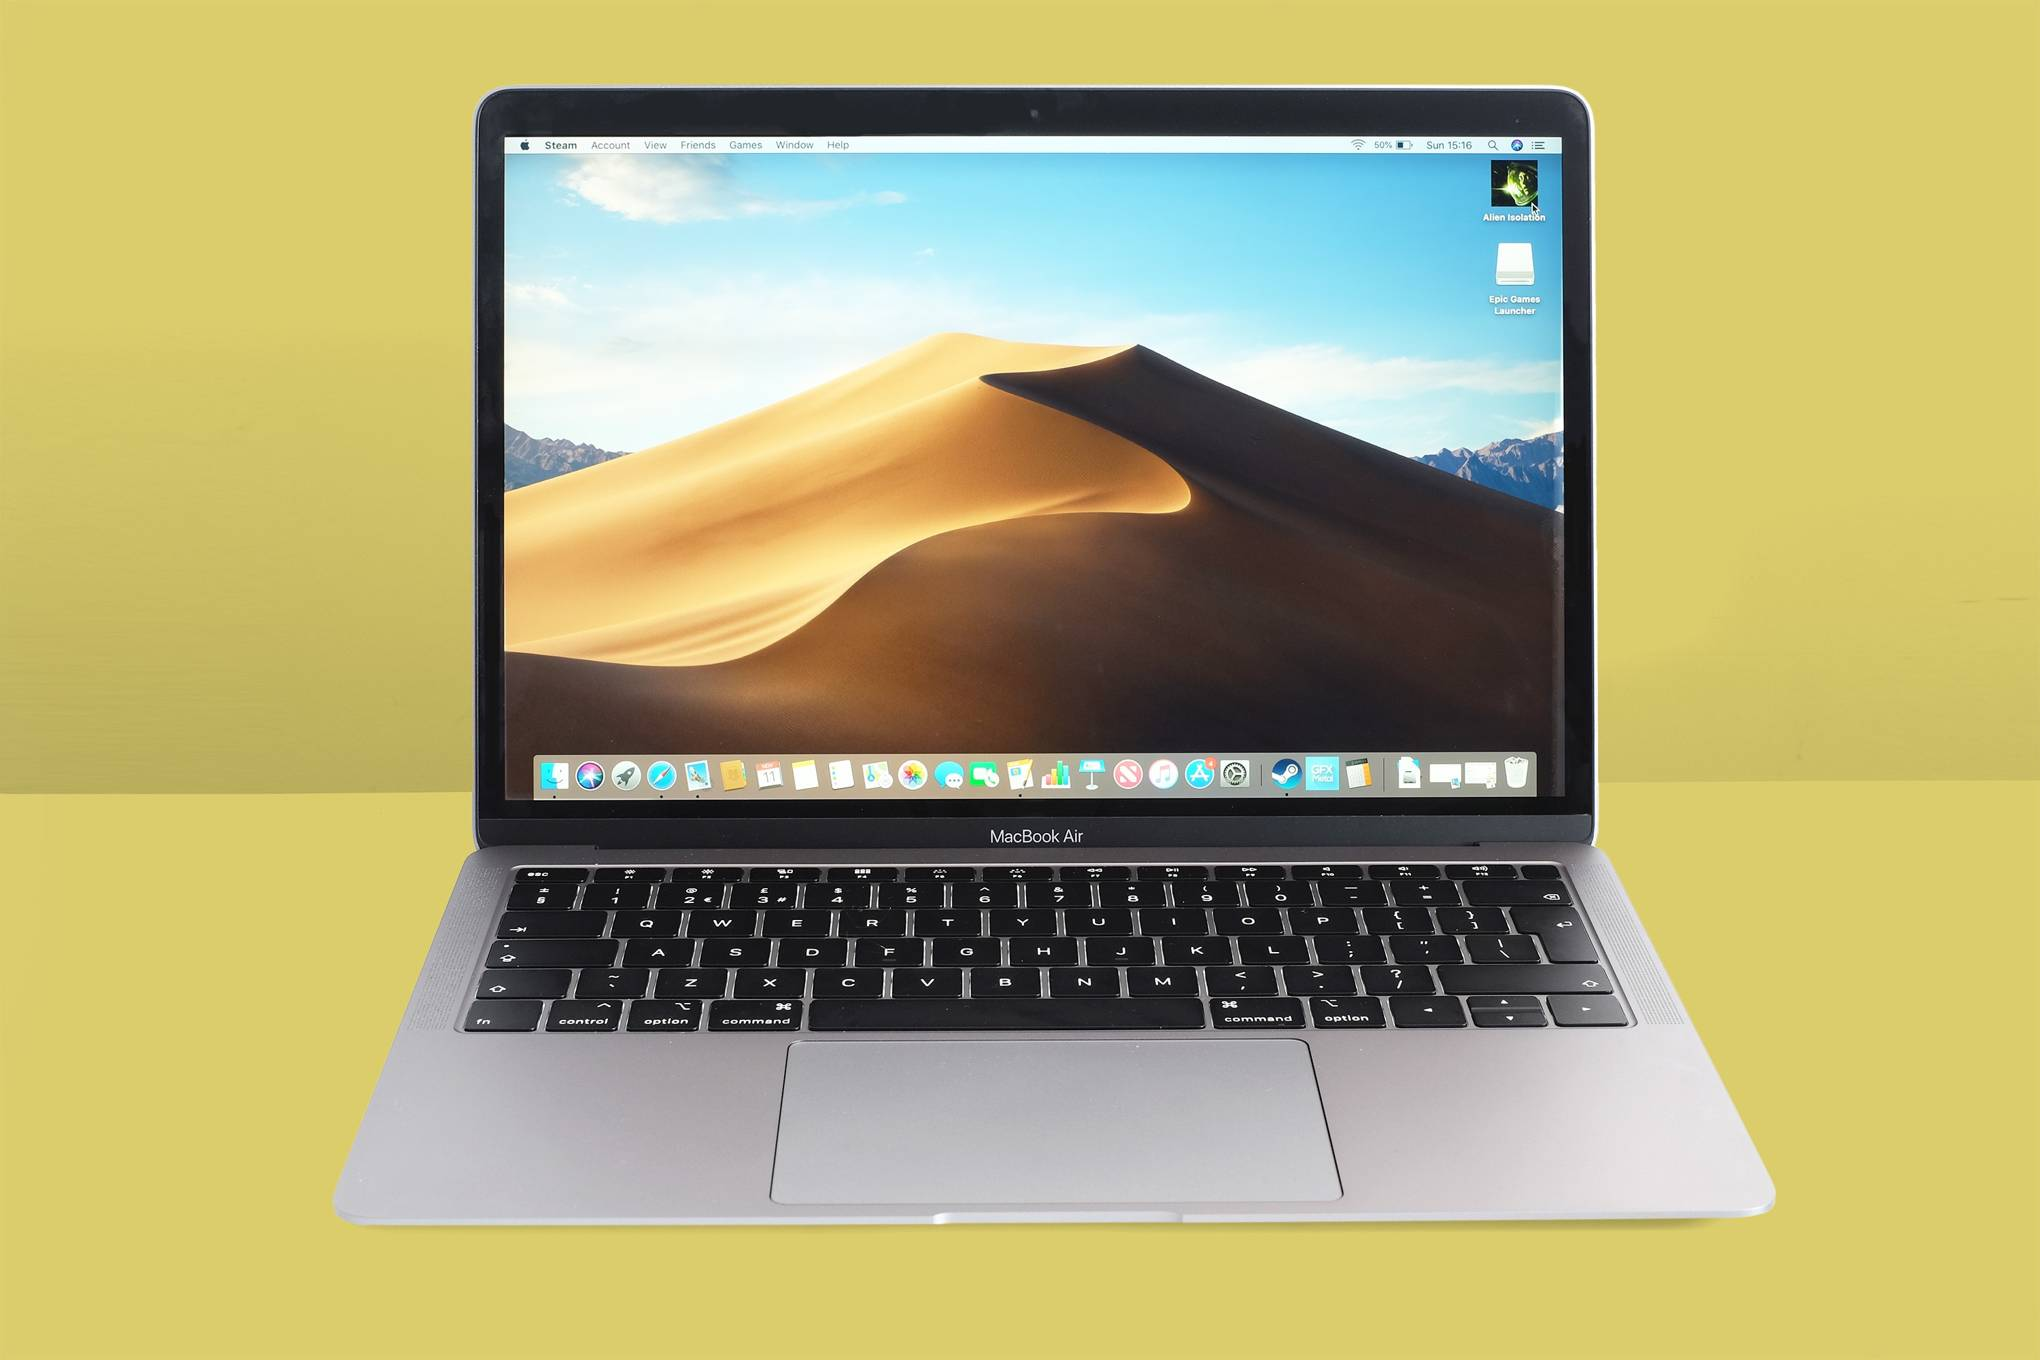 MacBook Air 2018 review: all the right tech, but who exactly is it for? | WIRED UK